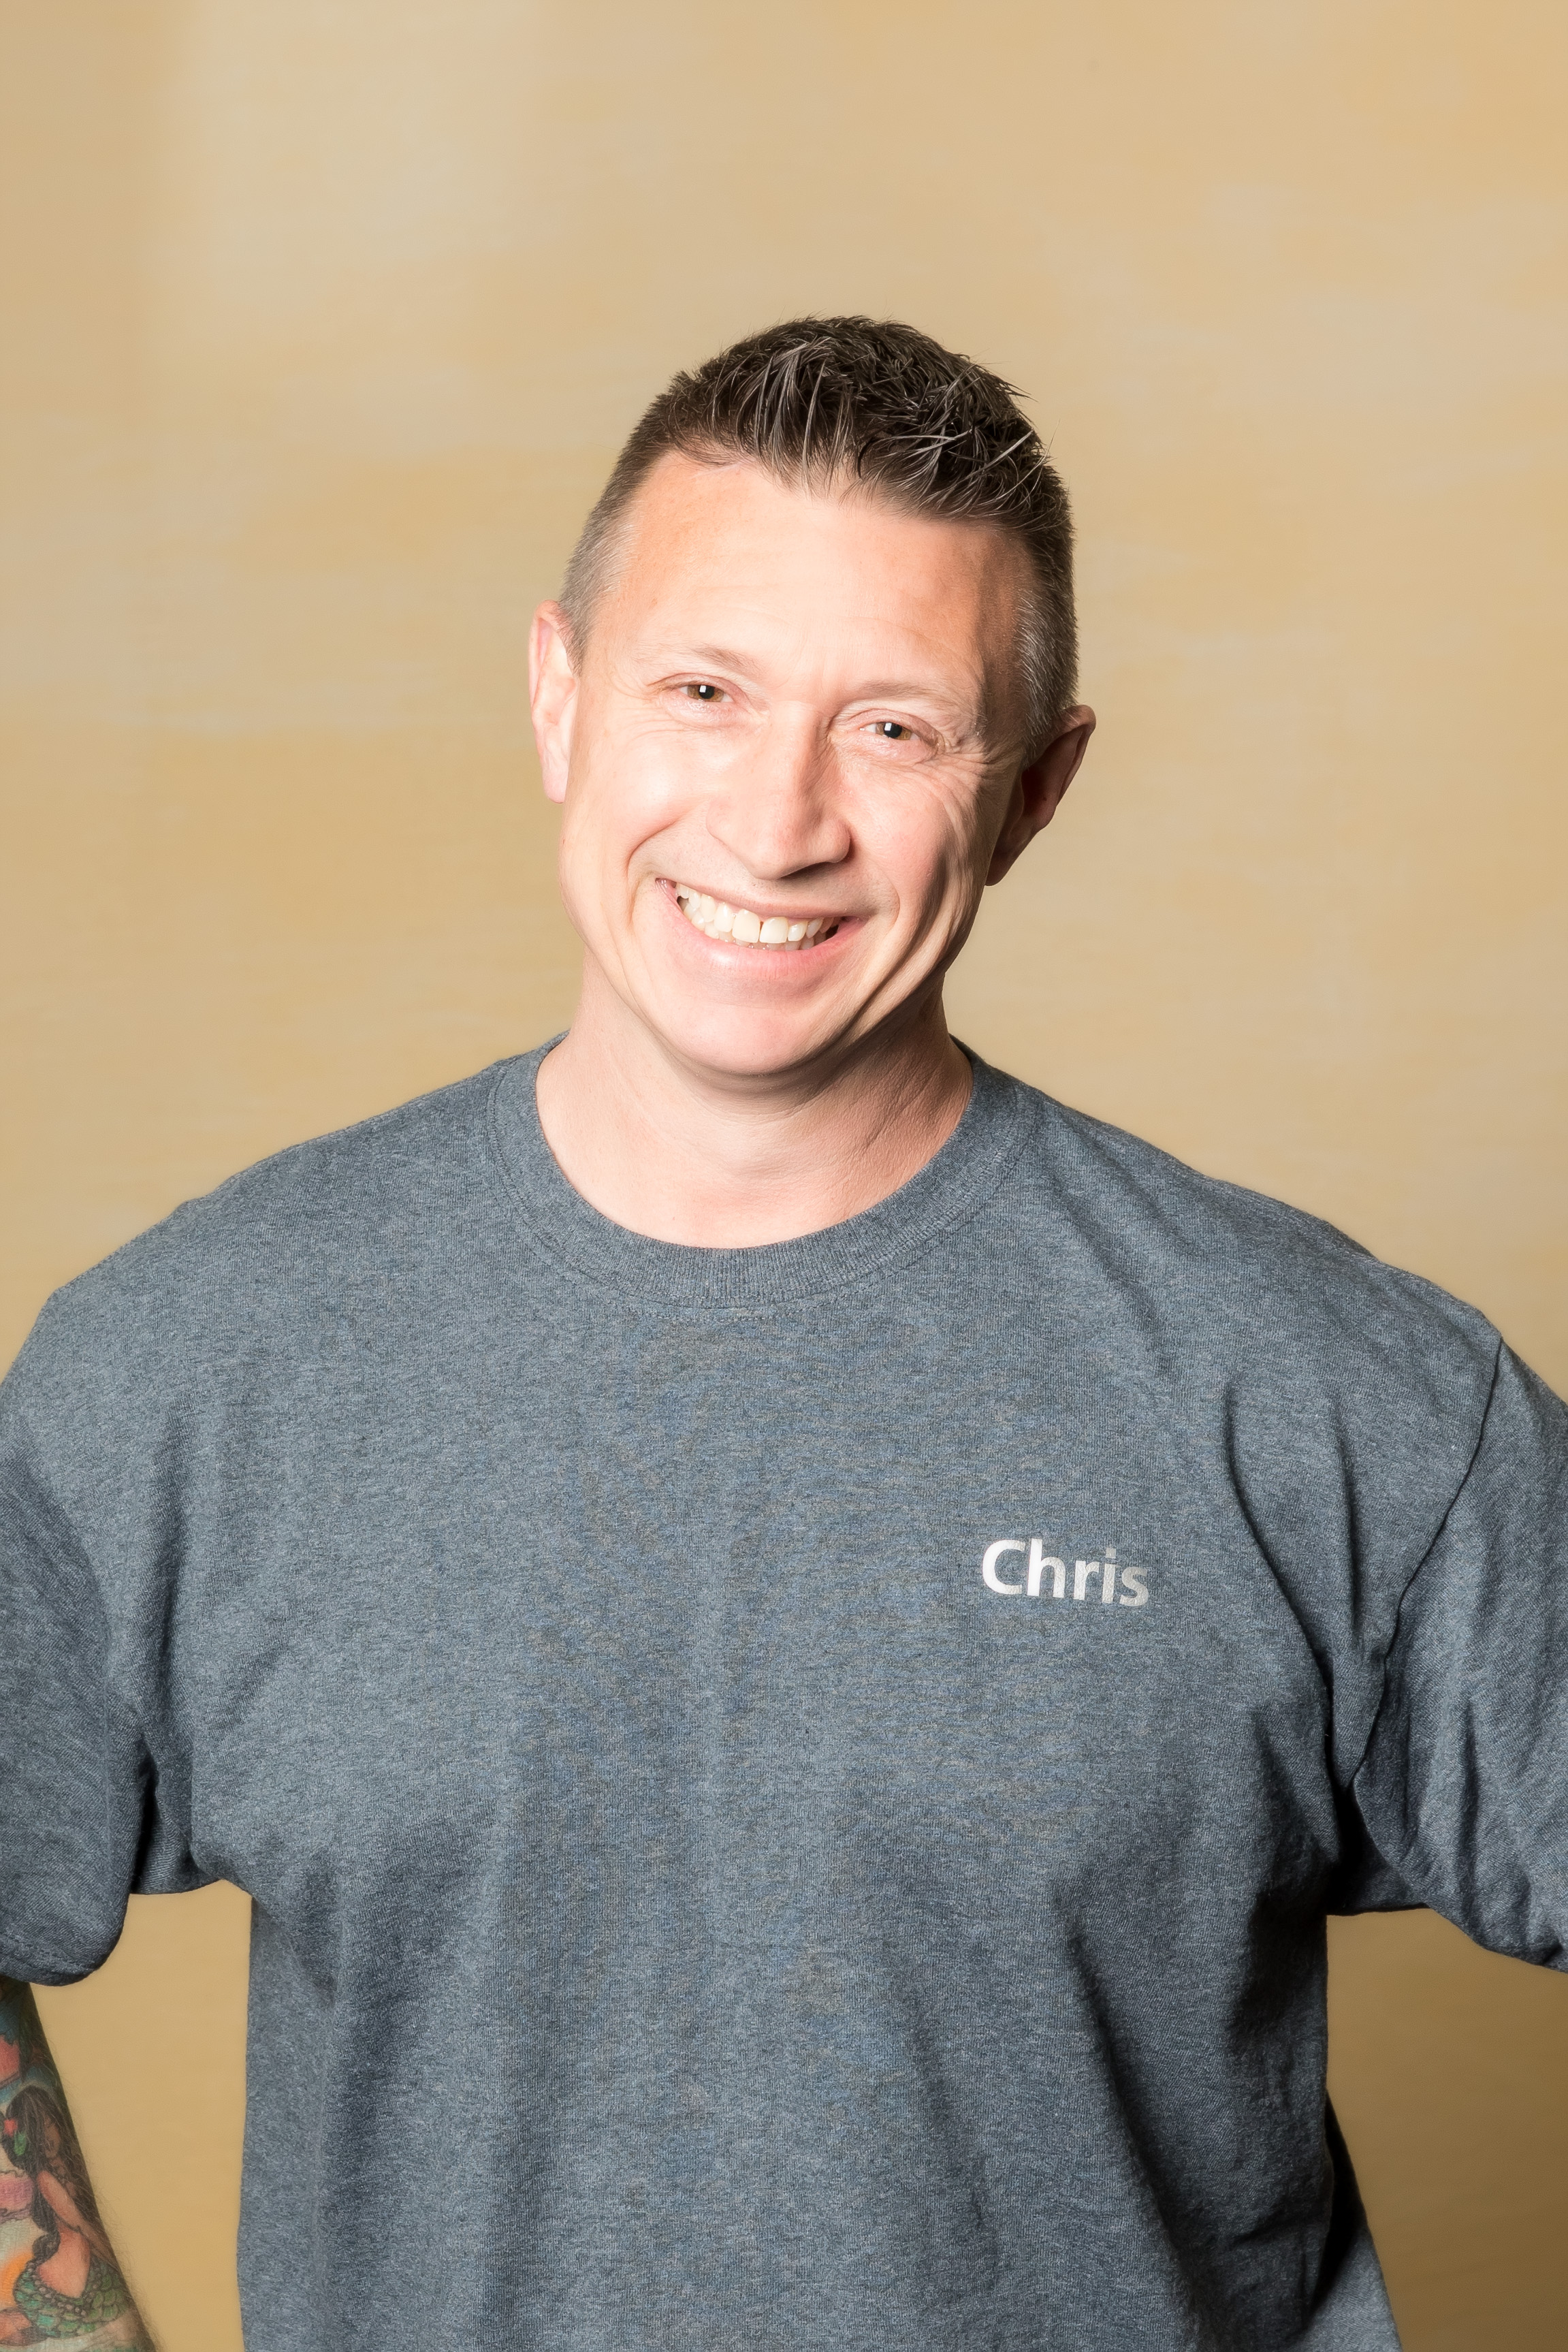 - Tumbling Coach-Chris TalmadgeCoach Chris Talmadge has been teaching gymnastics for over 30 years. He has coached at Tropical and Browns Gymnastics in Orlando, Florida. Coach Chris has been teaching at Footprints for the past 4 years.